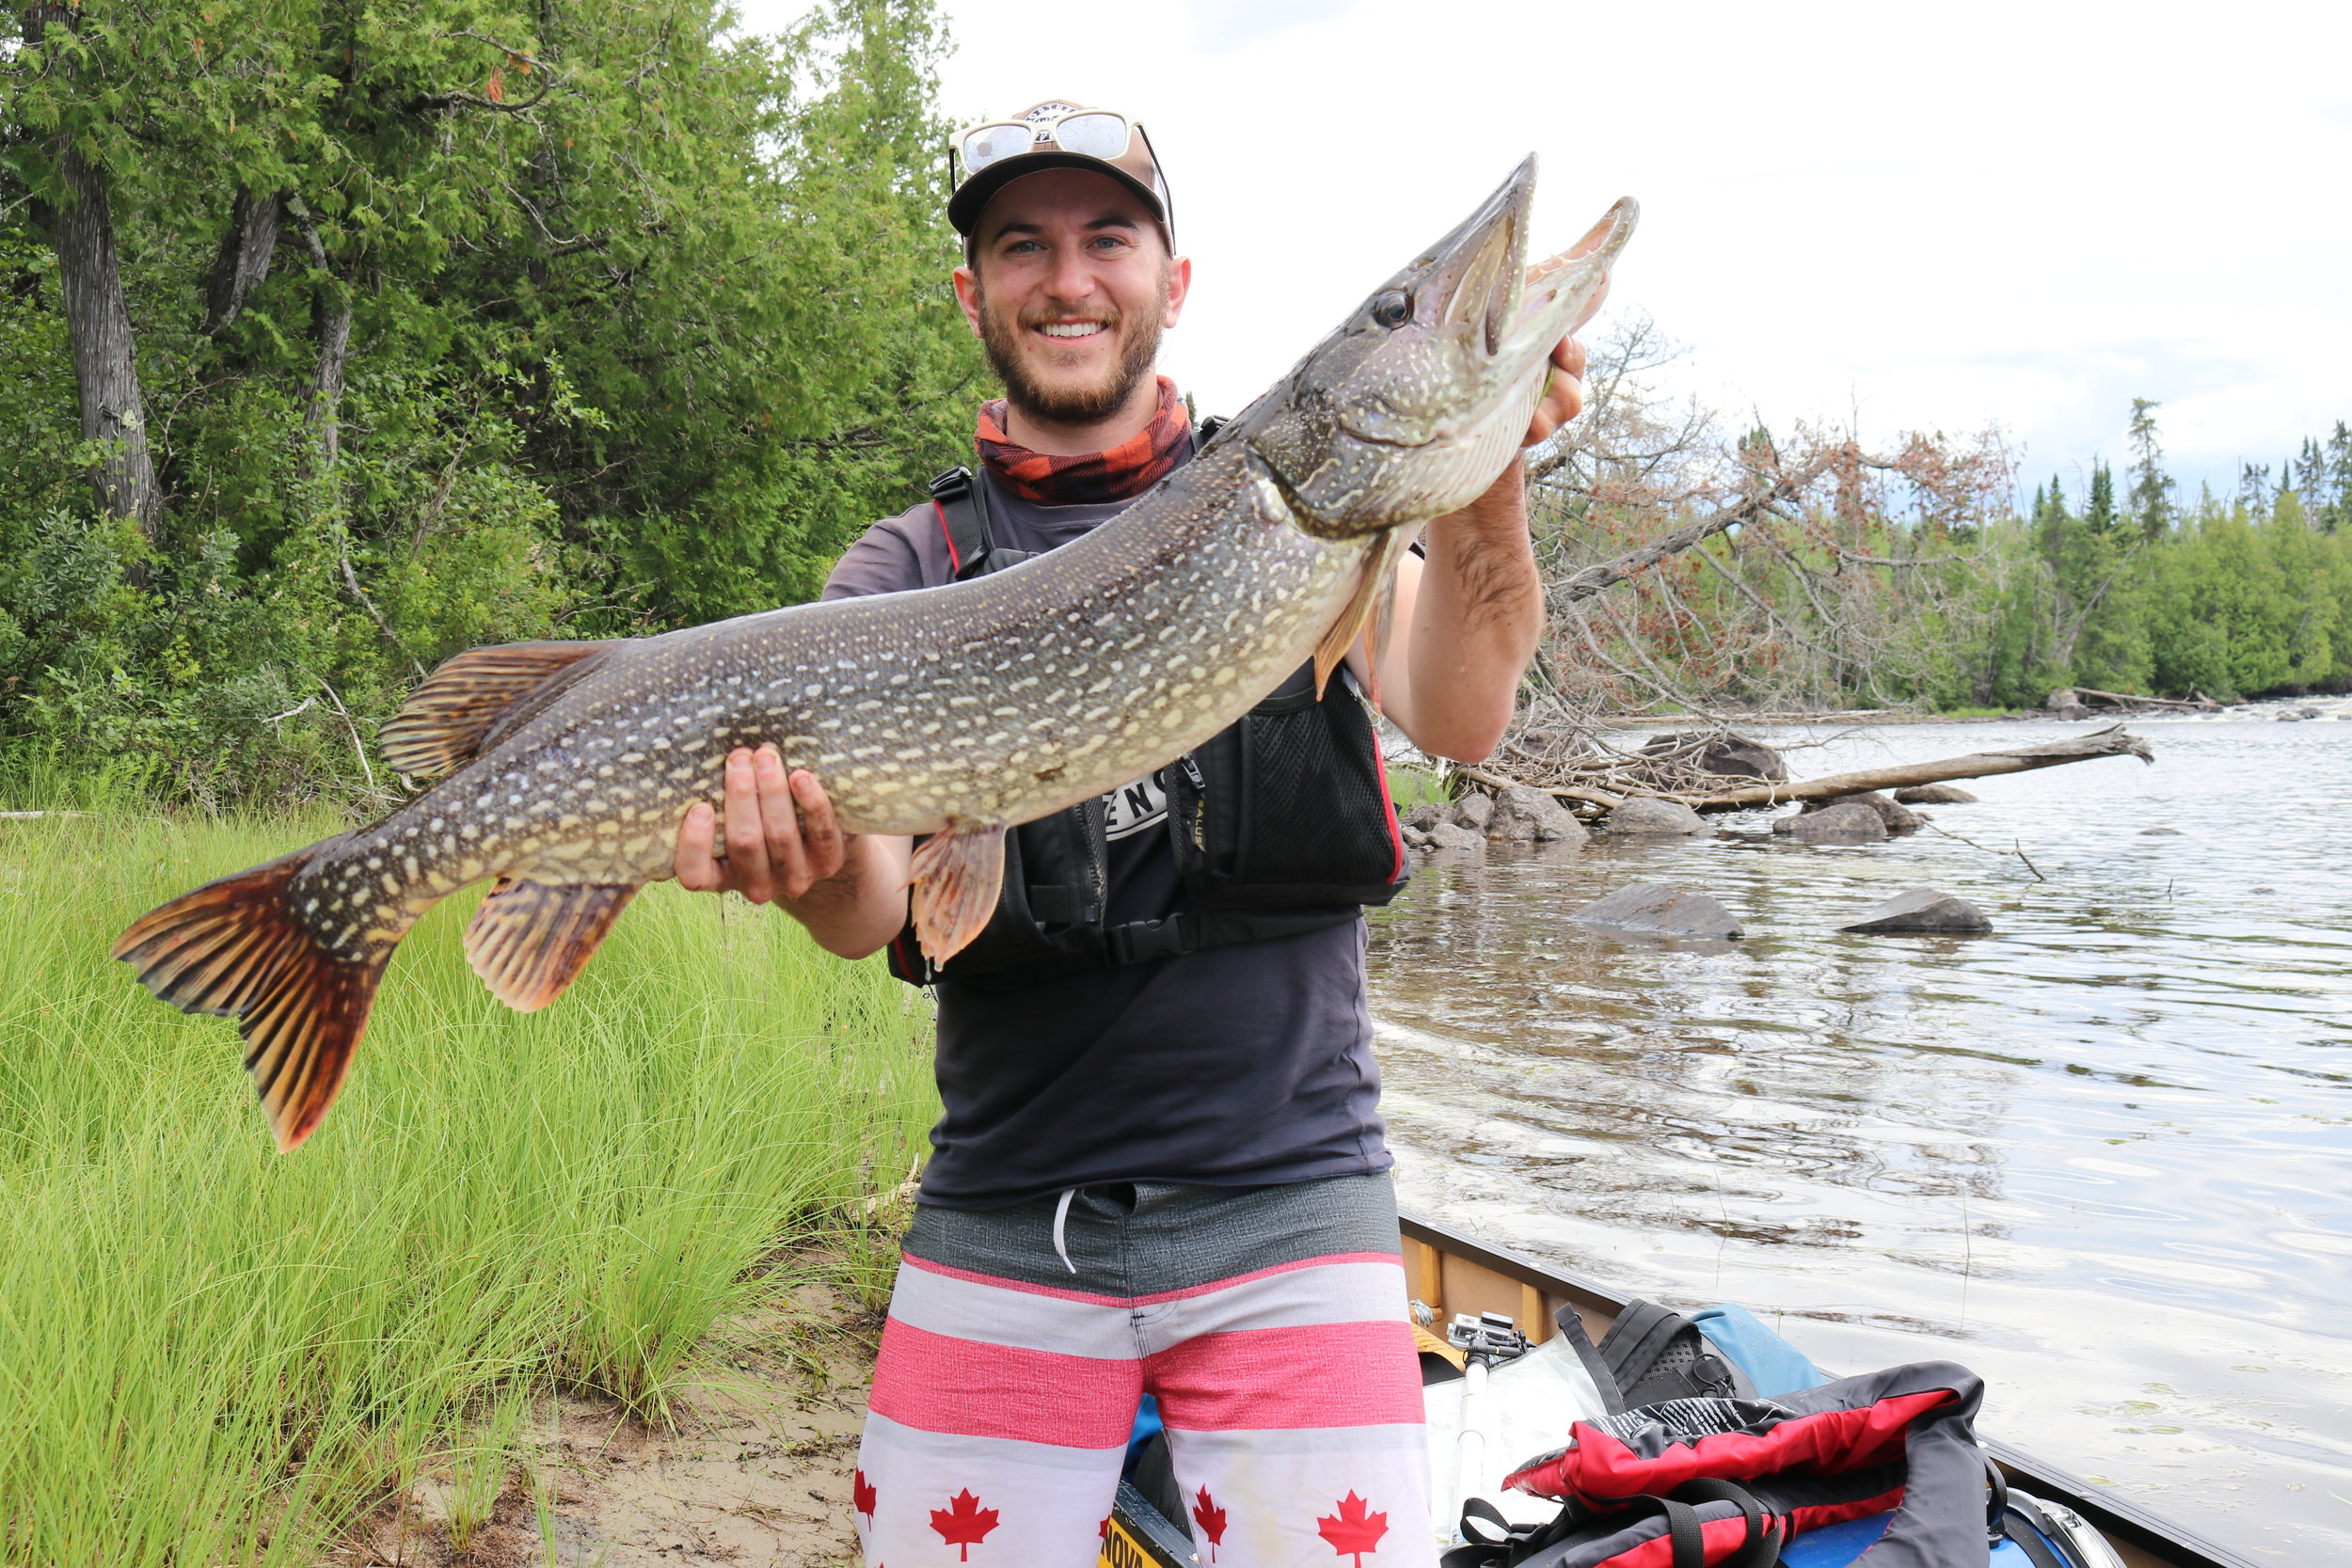 "42.5"" pike caught on 10lb monofilament line with a jig - 45 minute fight on the Berg River"